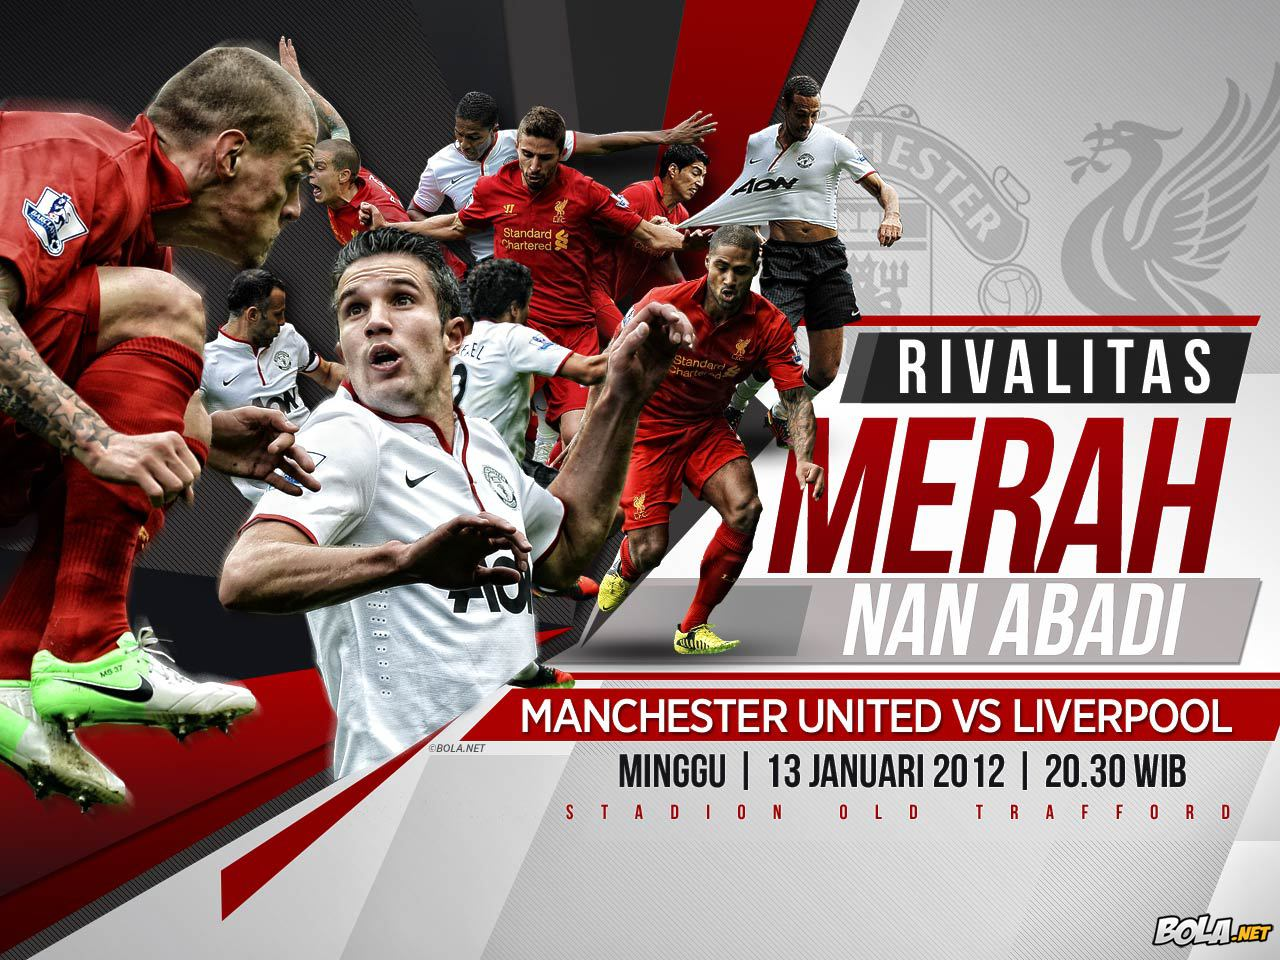 Manchester United vs Liverpool 13 Januari 2013